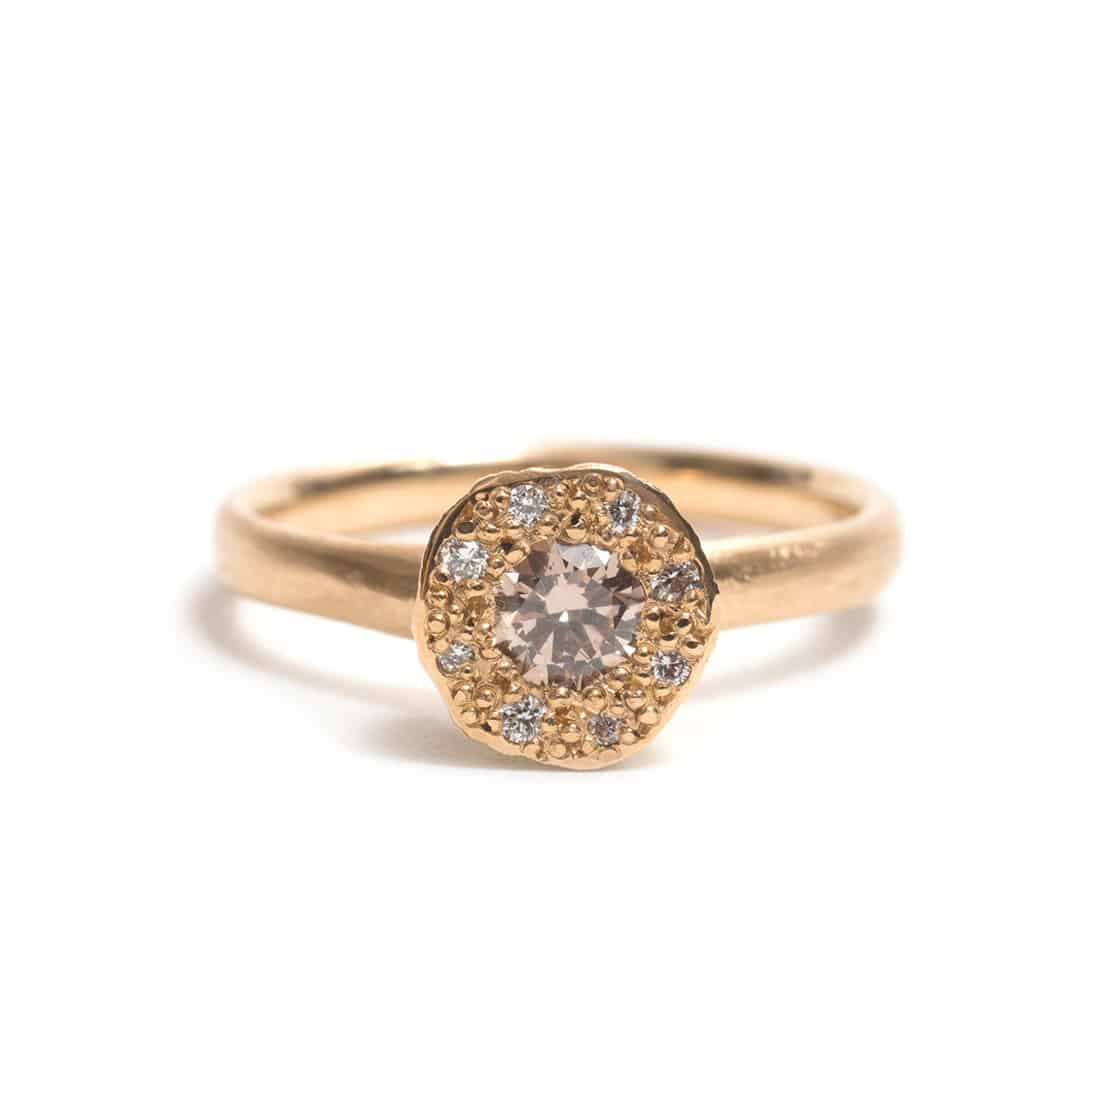 Unique engagement rings by Australian jewelers / Karla Way handcrafted engagement ring